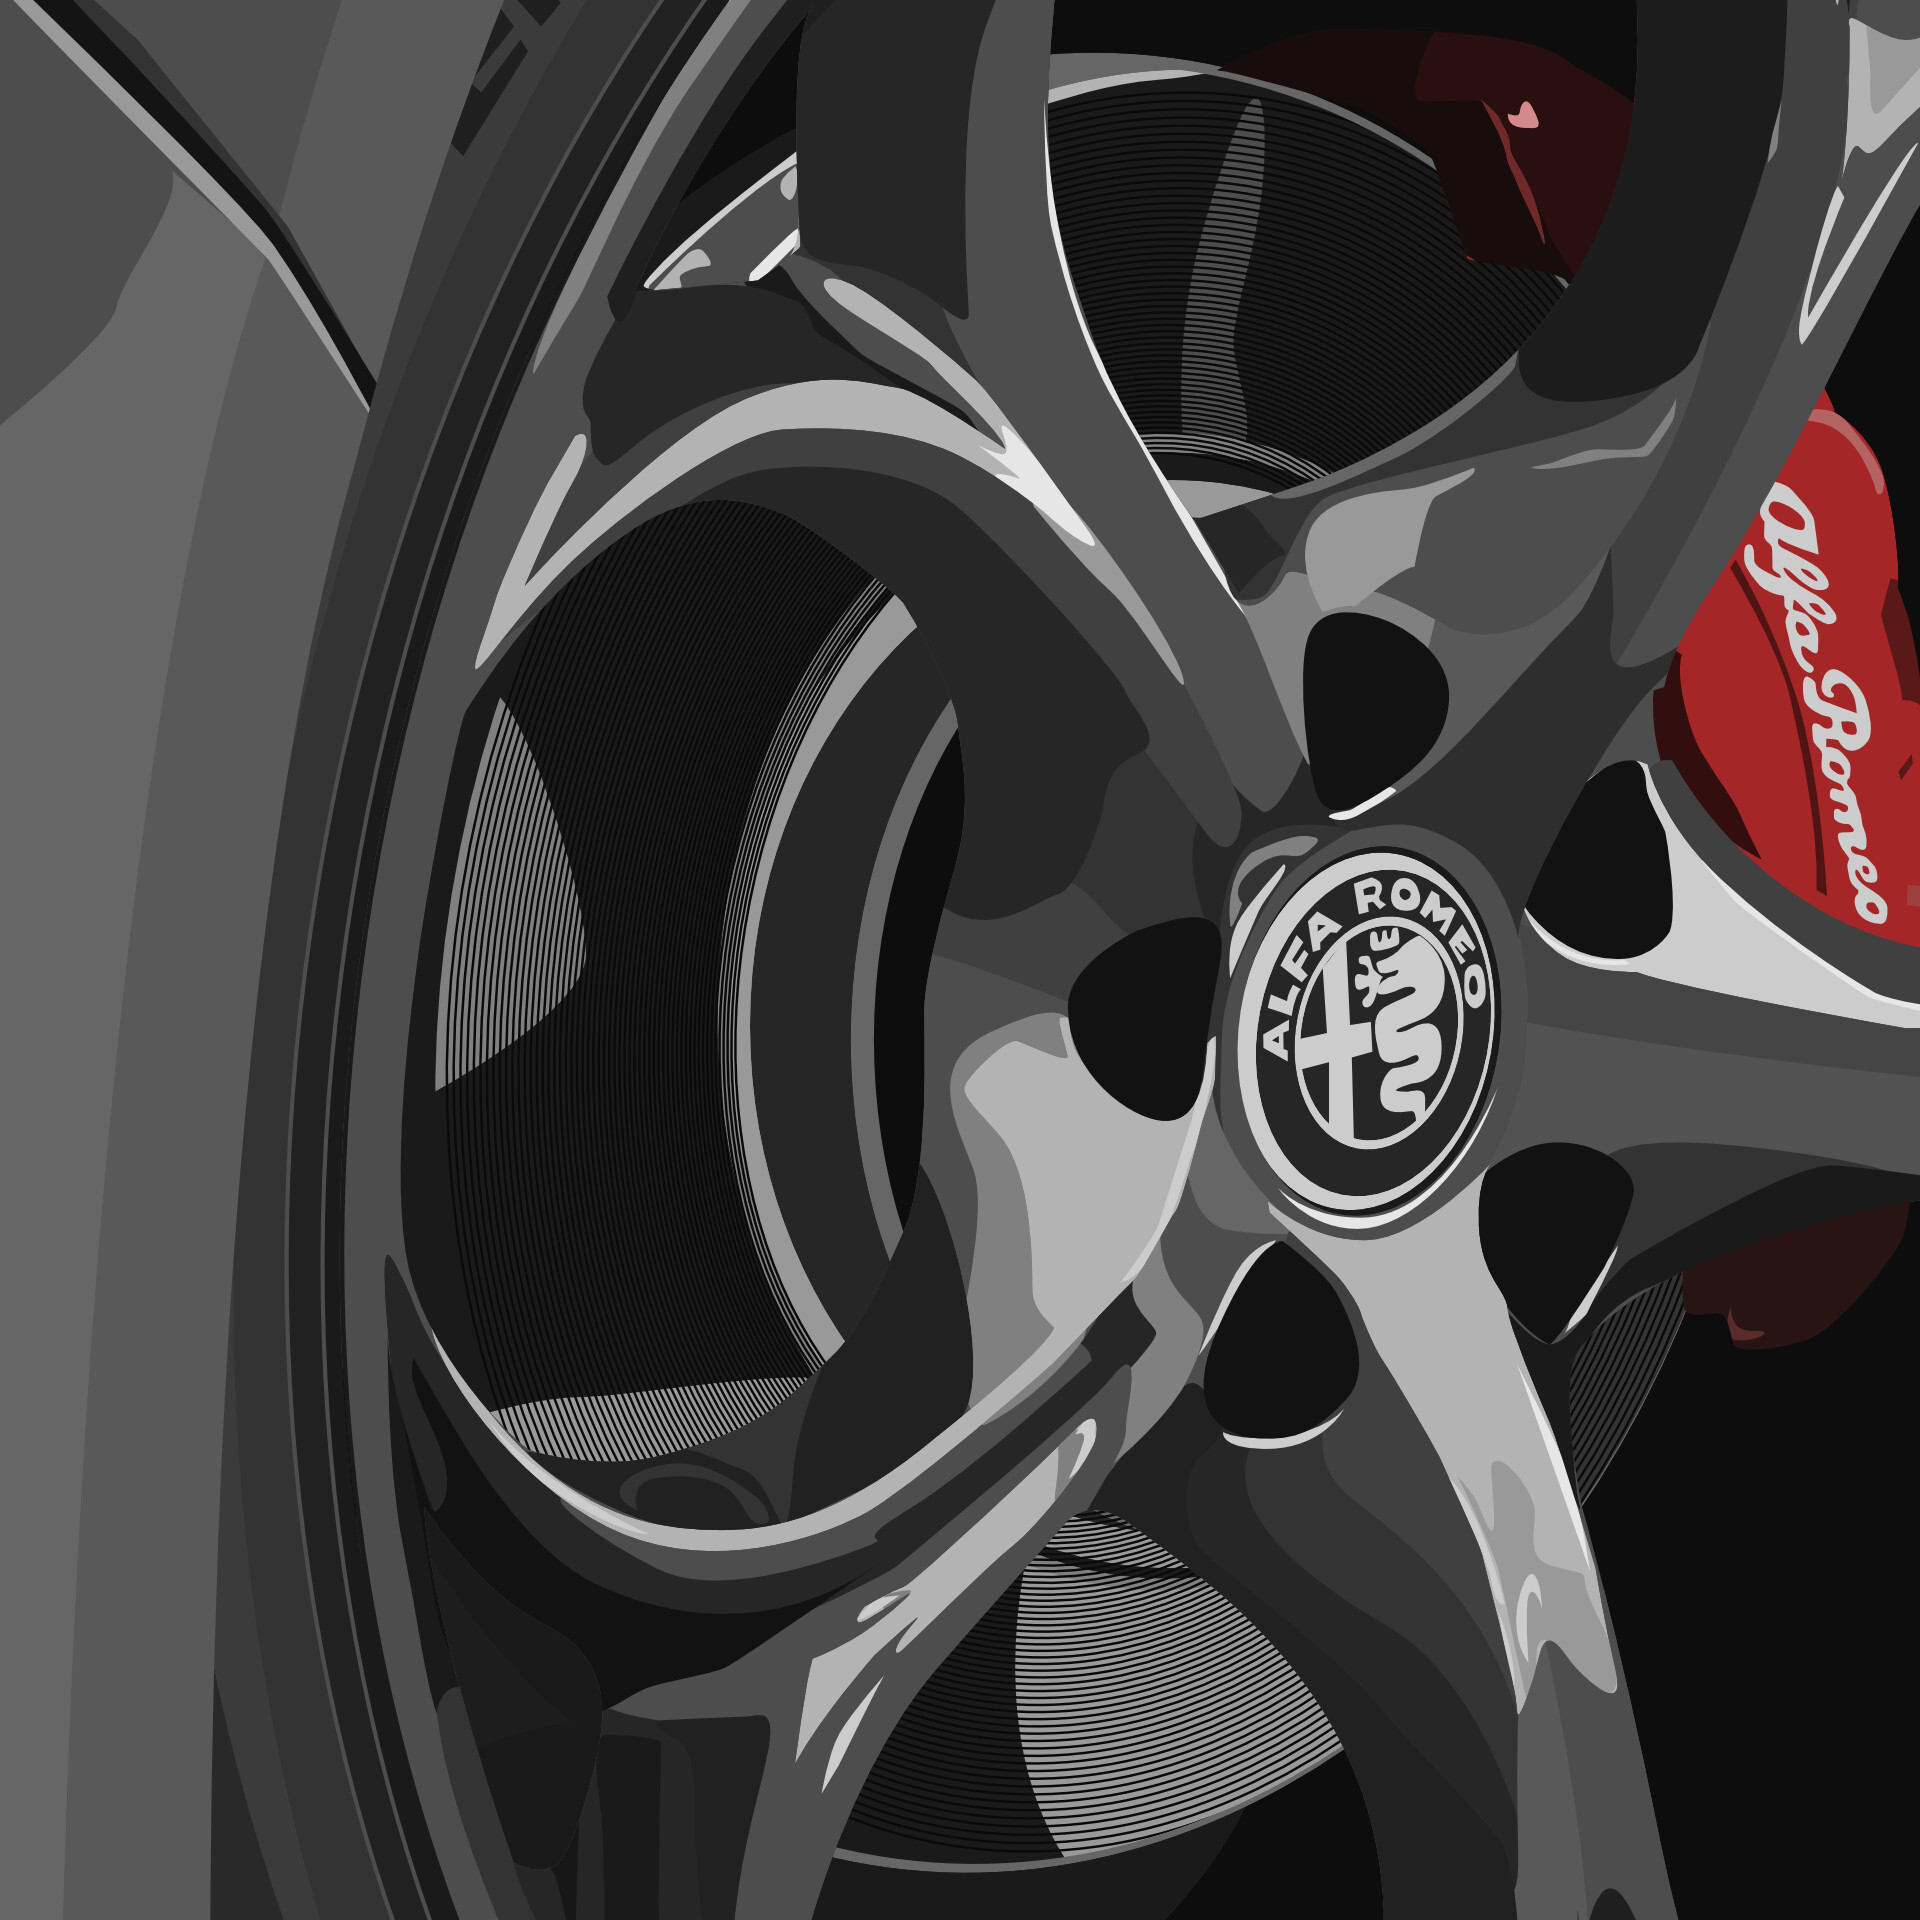 Detailed view of metal reflections on rim and brake disc etchings